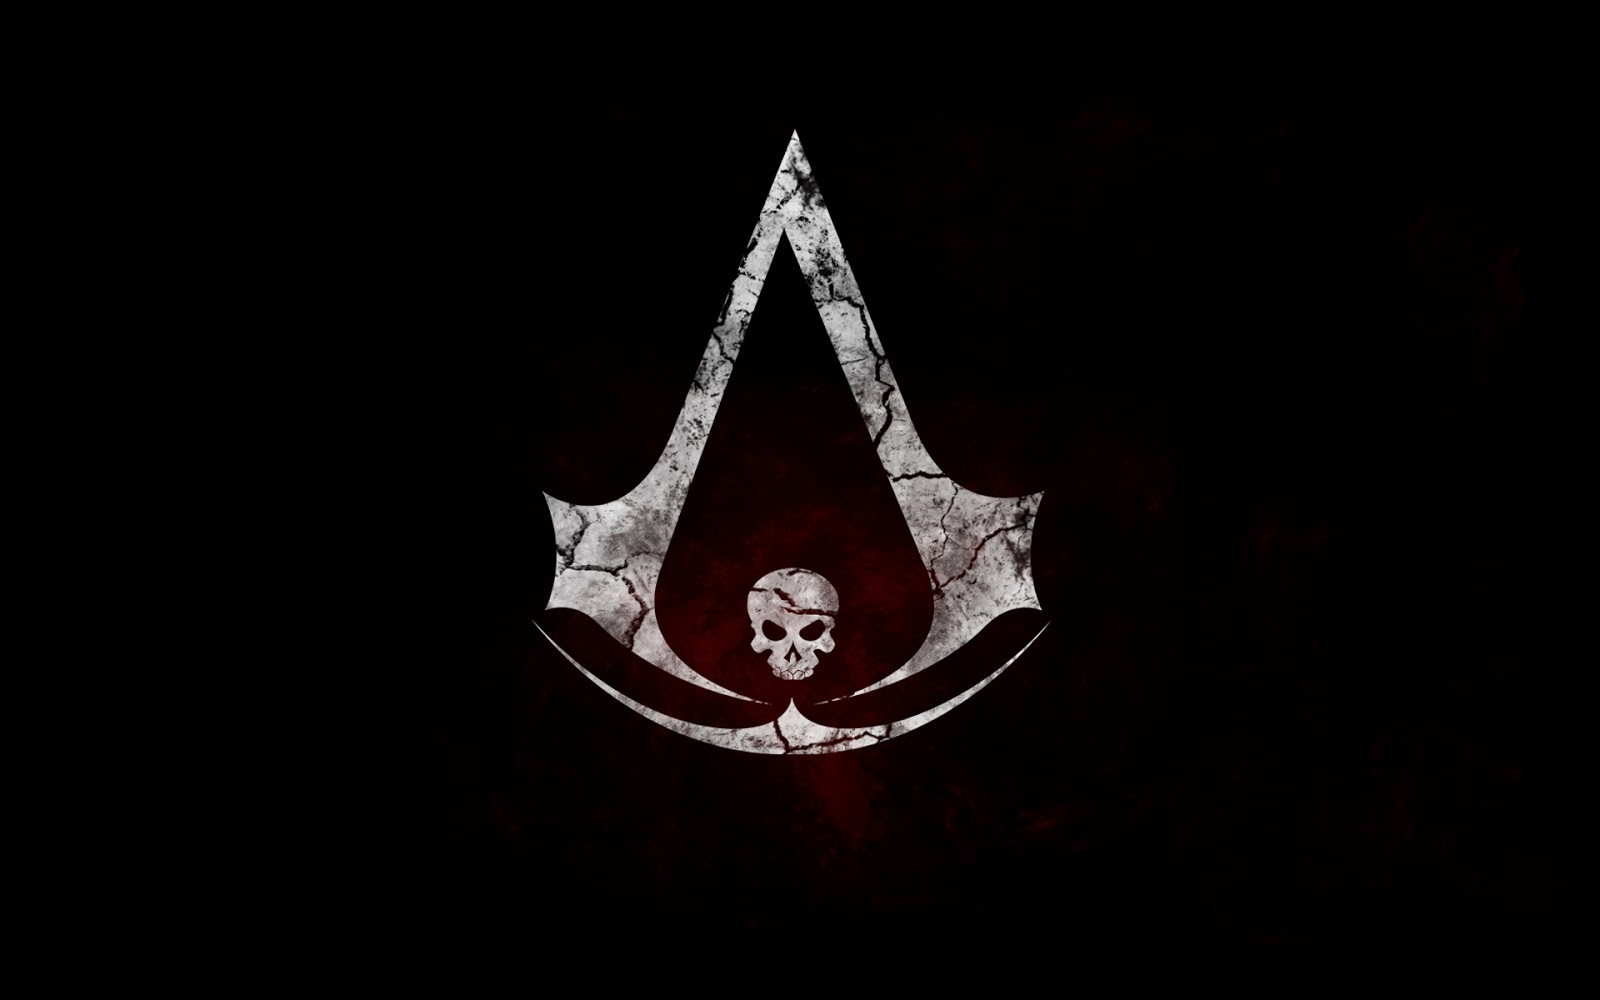 Free Download Assassins Creed 4 Black Flag Logo P08 Hd Wallpaper 1600x1000 For Your Desktop Mobile Tablet Explore 48 Assassins Creed Logo Wallpaper Assassins Creed 3 Wallpaper Hd Assassins